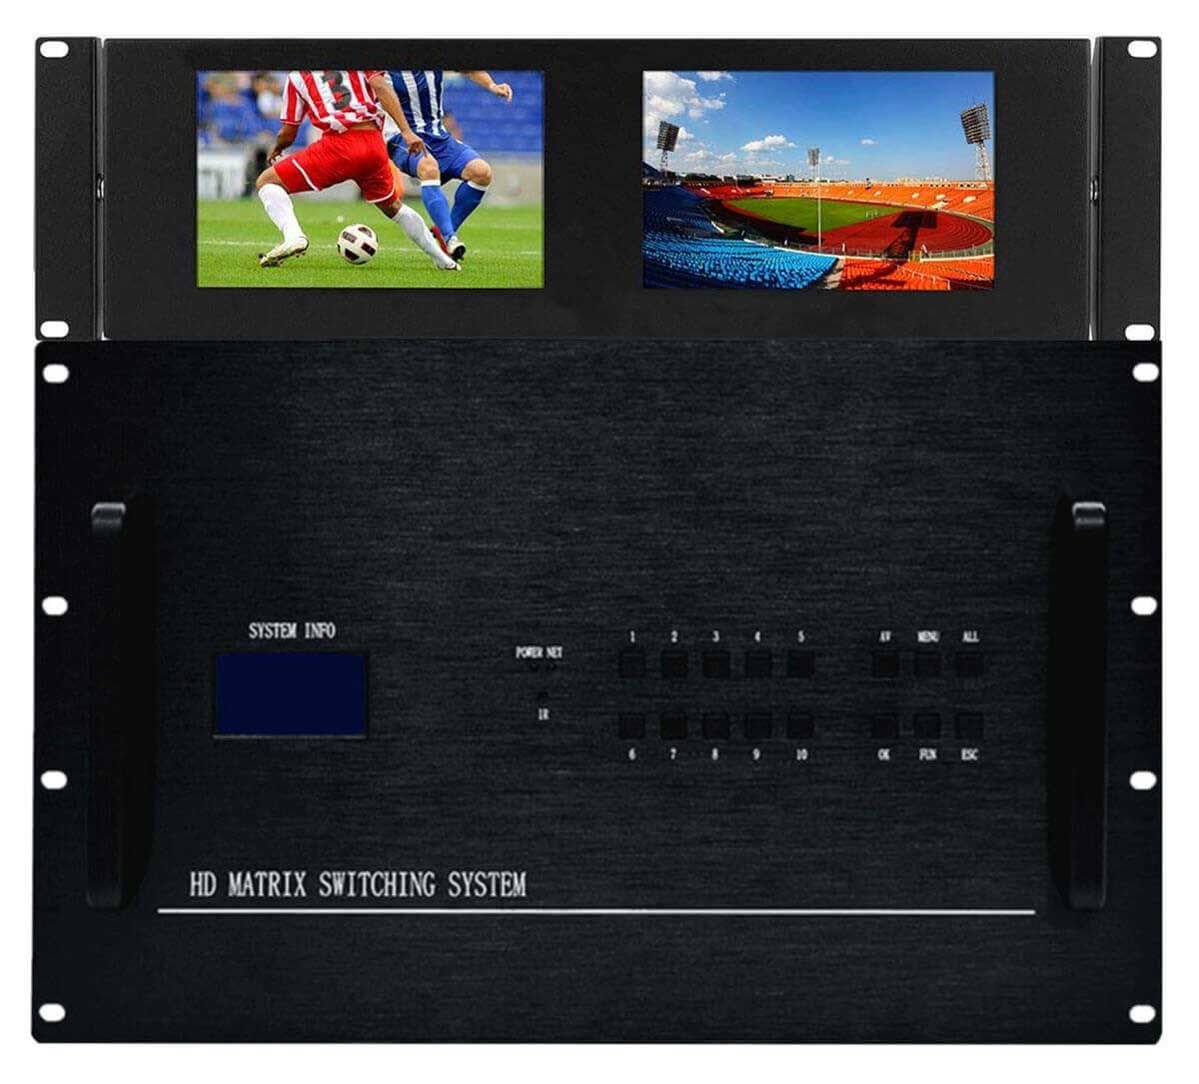 4K 20x20 HDMI Matrix HDBaseT Switch with 20-CAT5 Extenders